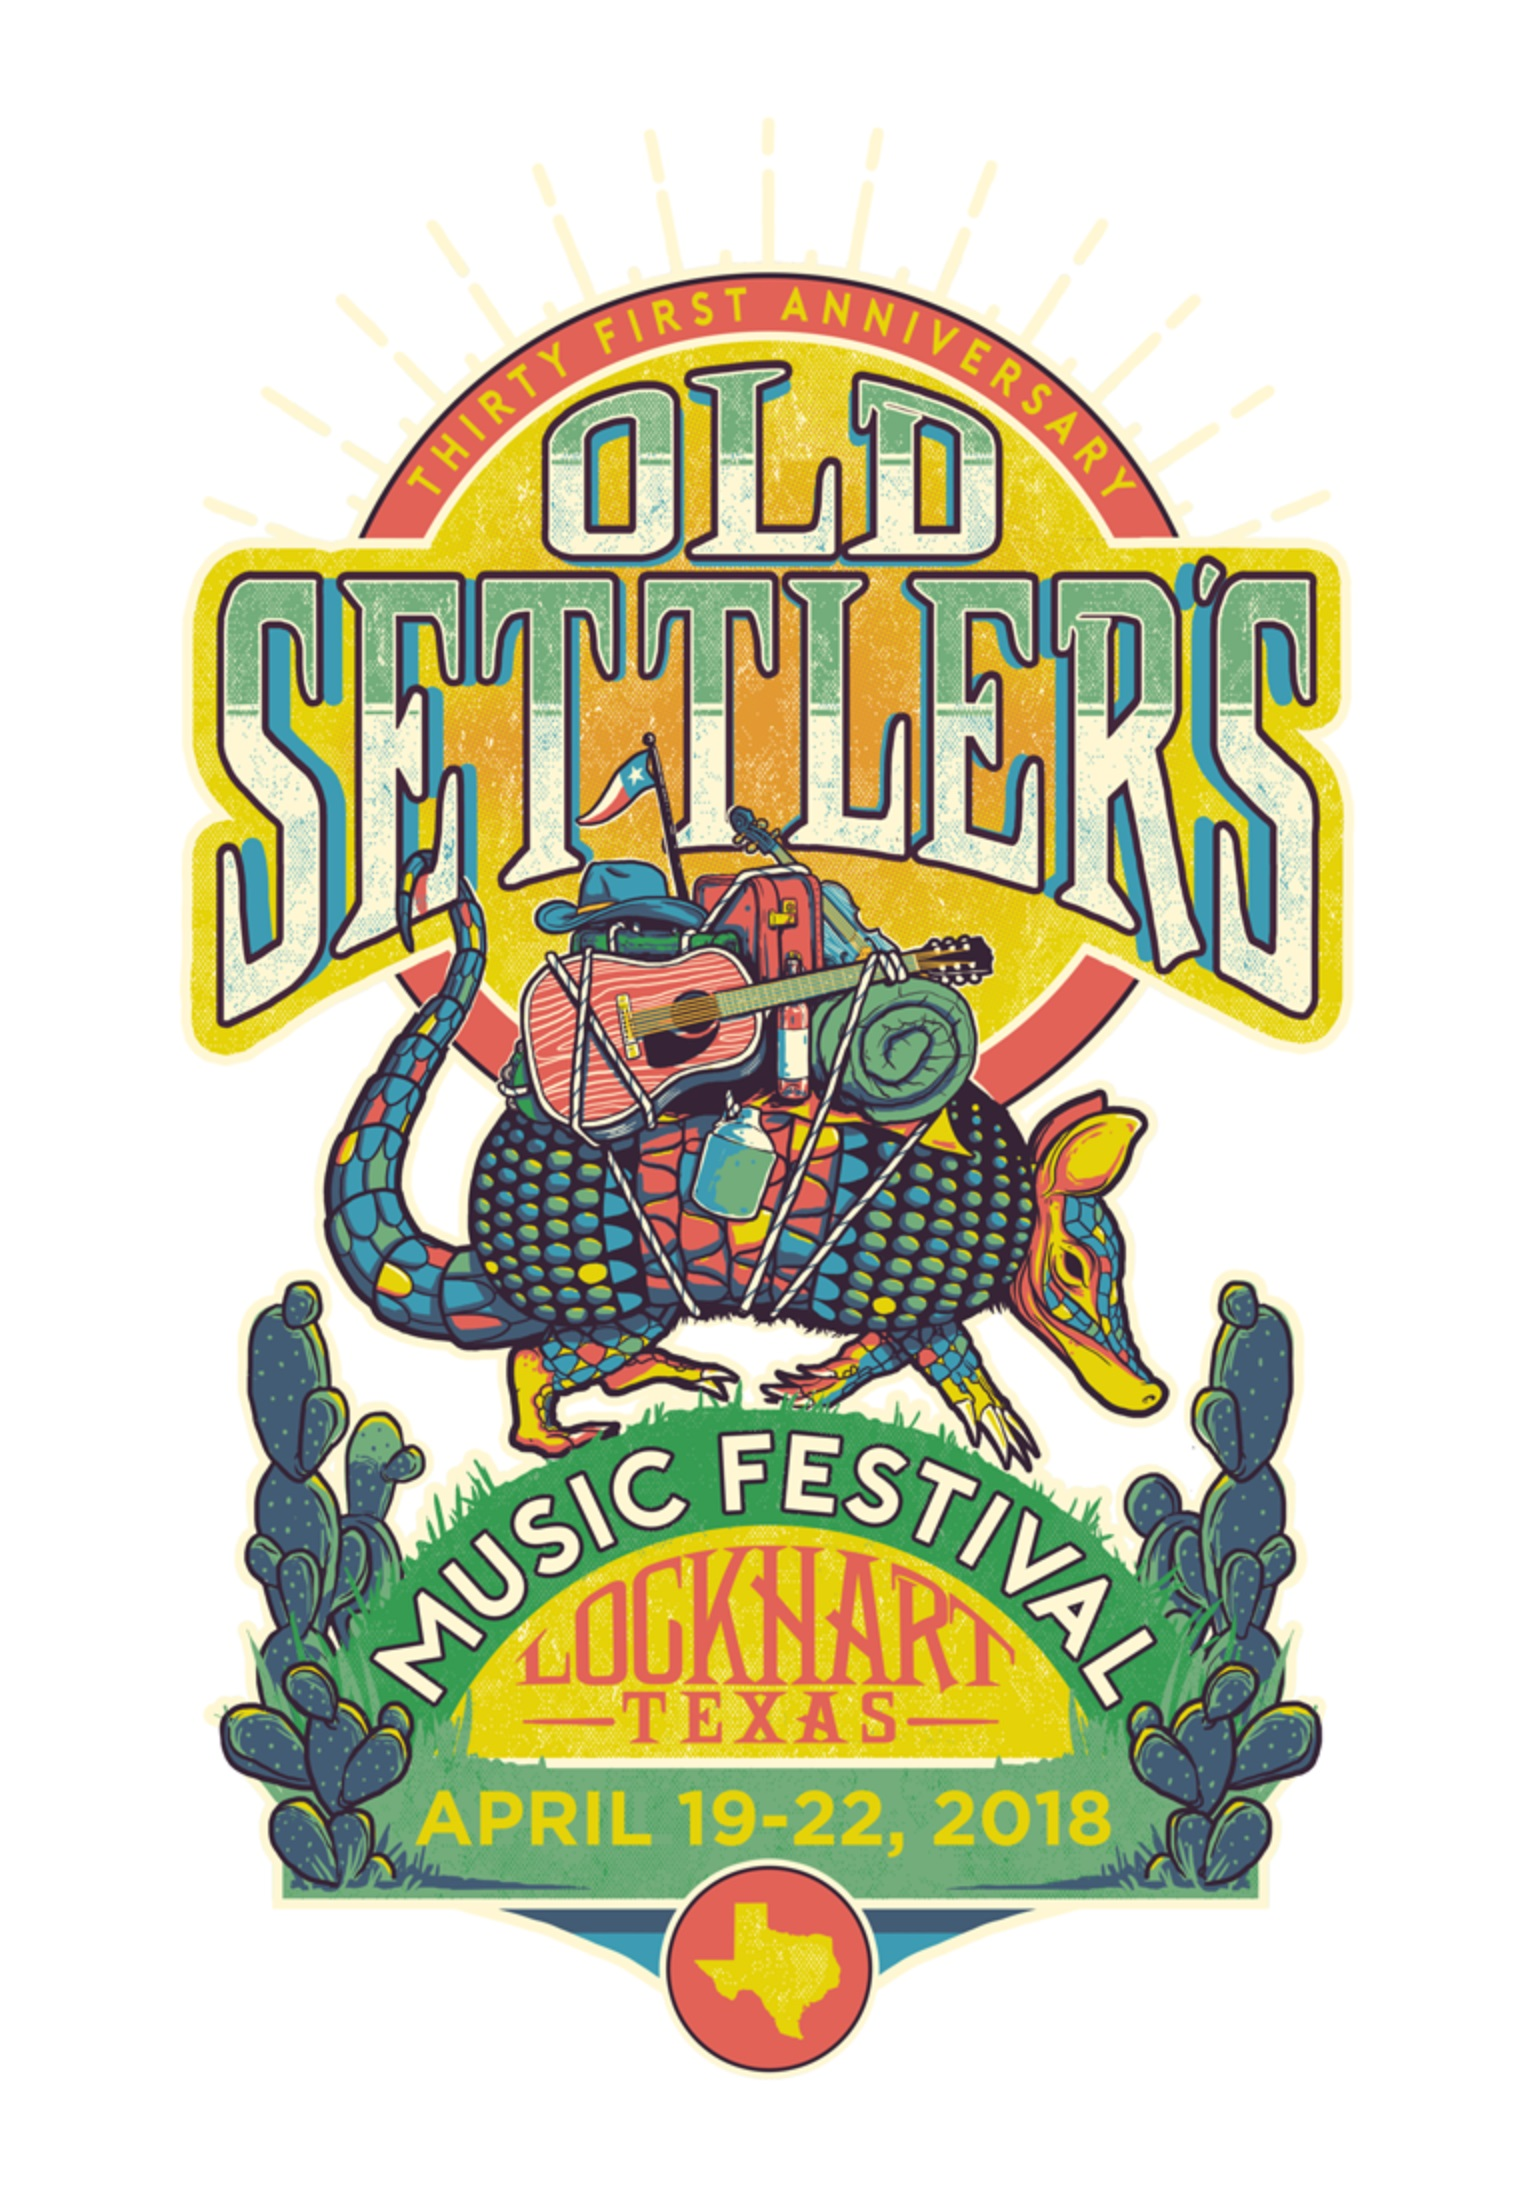 Old Settler's Music Festival 2018 Ticket Packages Go On Sale Wednesday